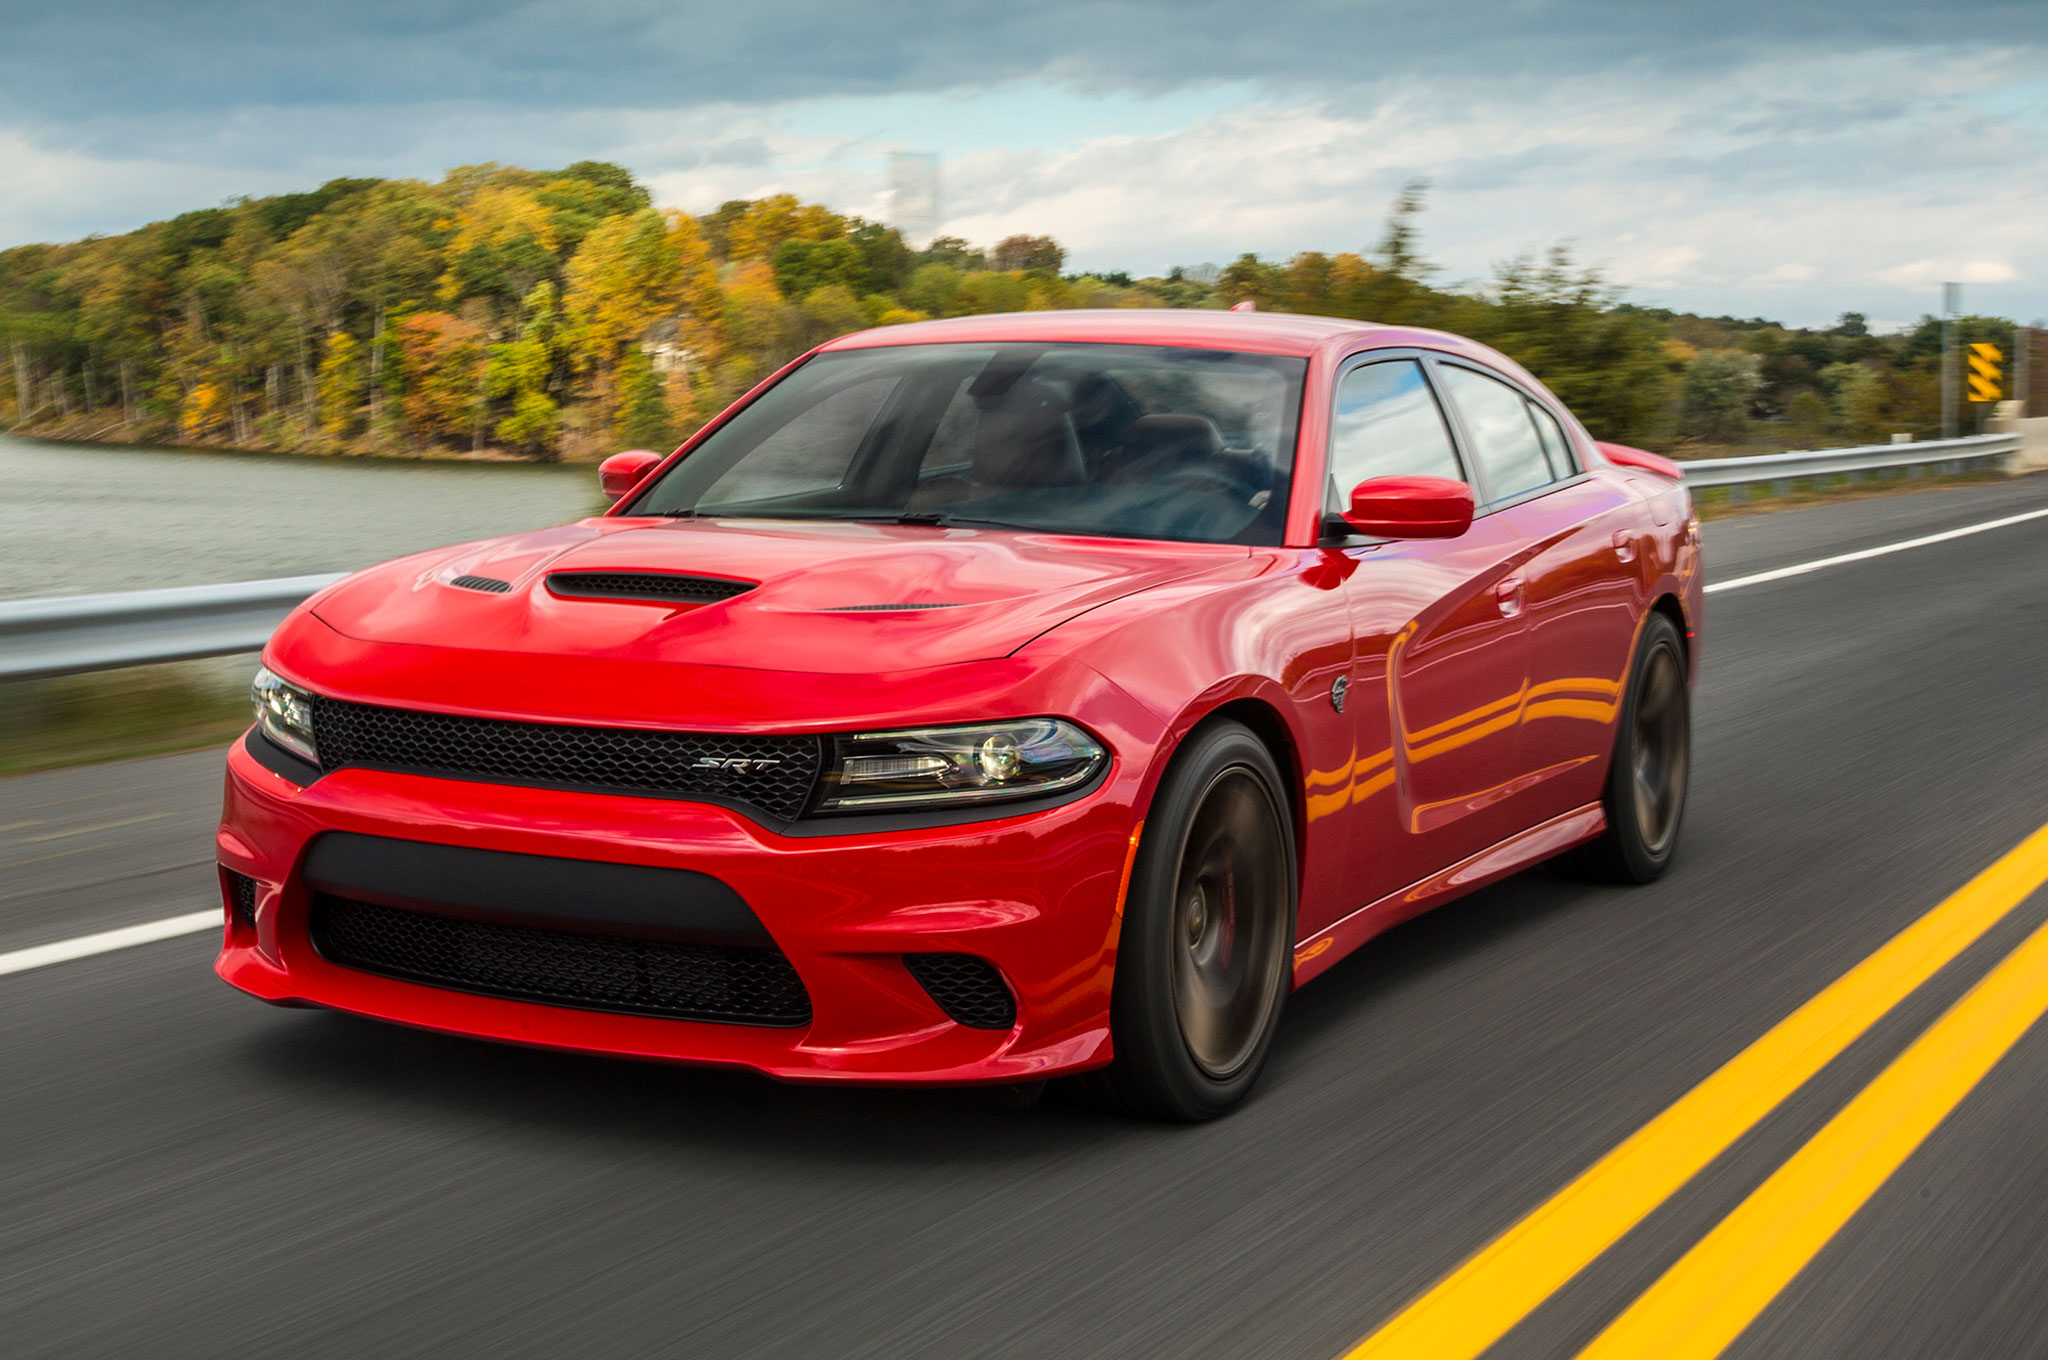 17 Charger Hellcat >> 2015 Dodge Charger Srt Hellcat Review